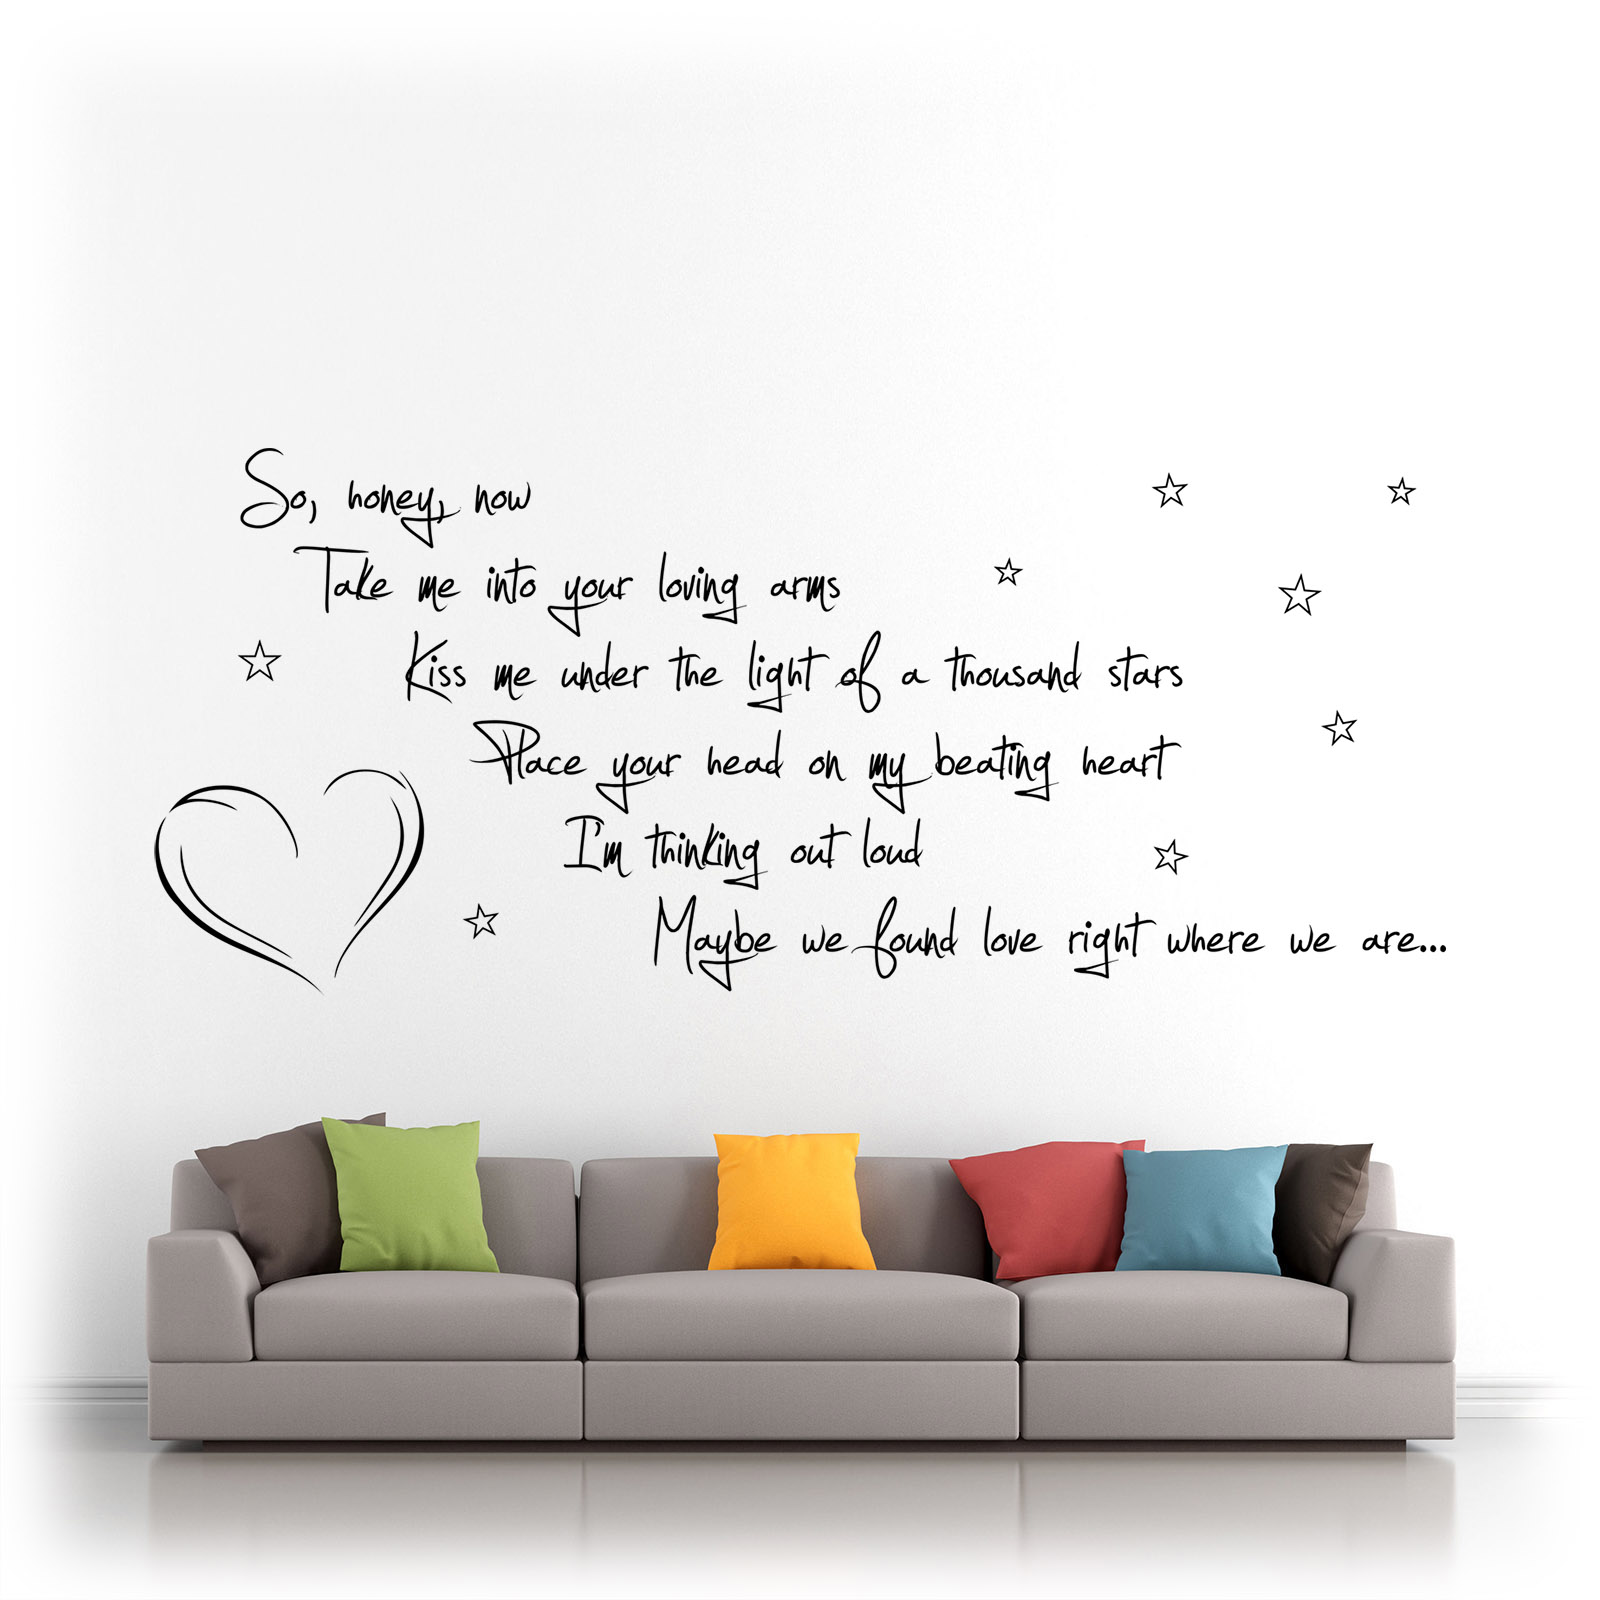 Sofa Lyrics By Ed Sheeran Details About Ed Sheeran Thinking Out Loud Song Lyrics Vinyl Wall Art Silhouette Es1b Matt